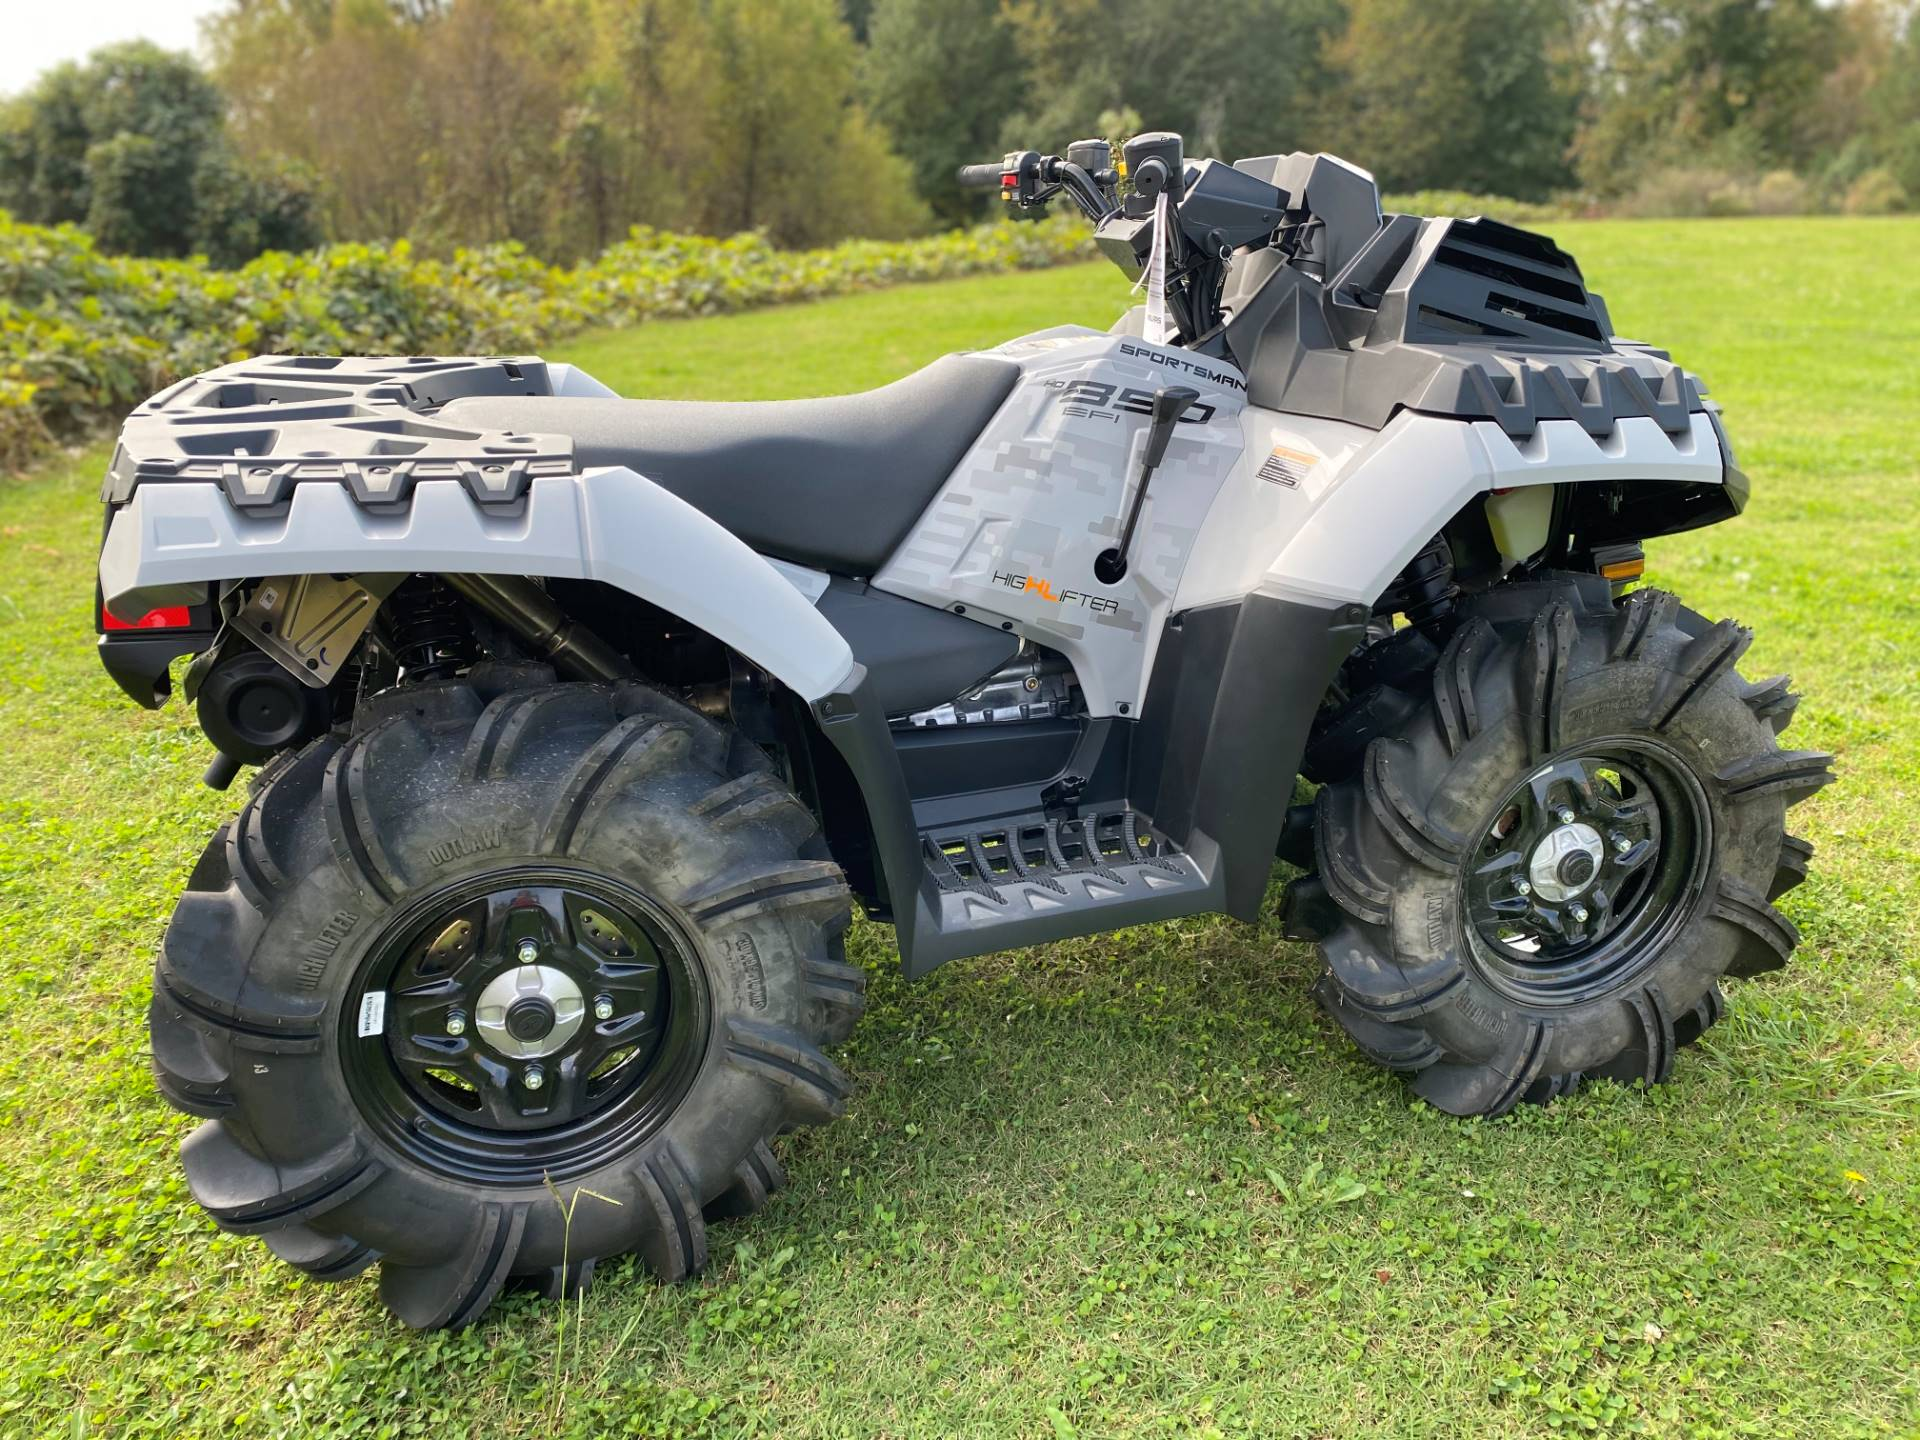 2021 Polaris Sportsman 850 High Lifter Edition in Greer, South Carolina - Photo 10